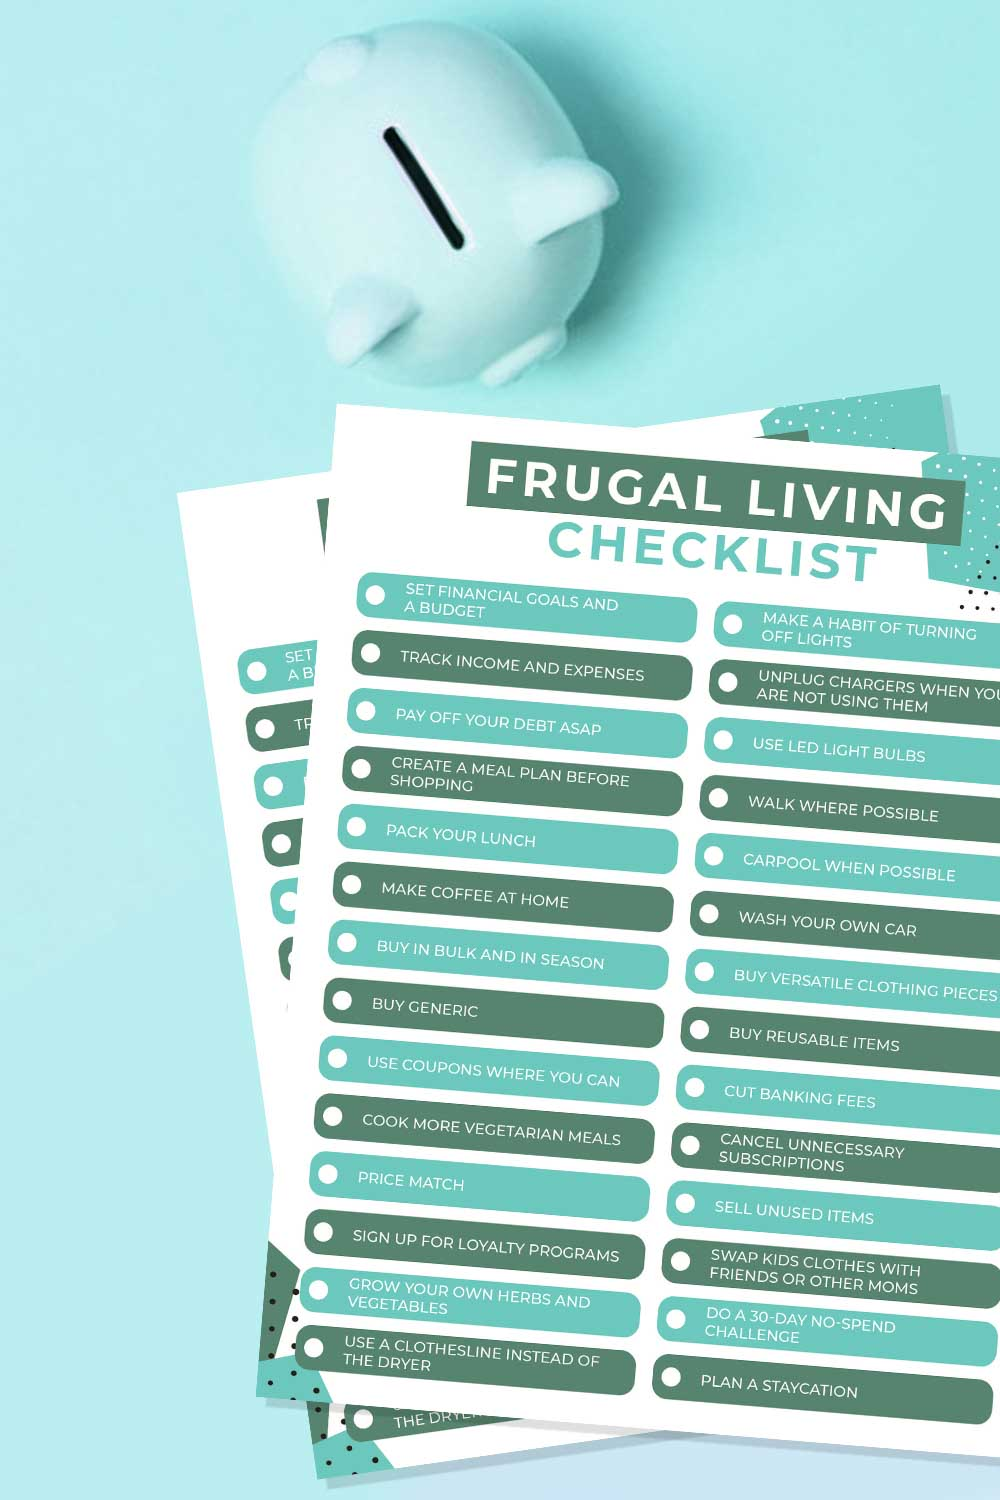 28 Shocking Ways Frugal People Save Money {Free Printable}